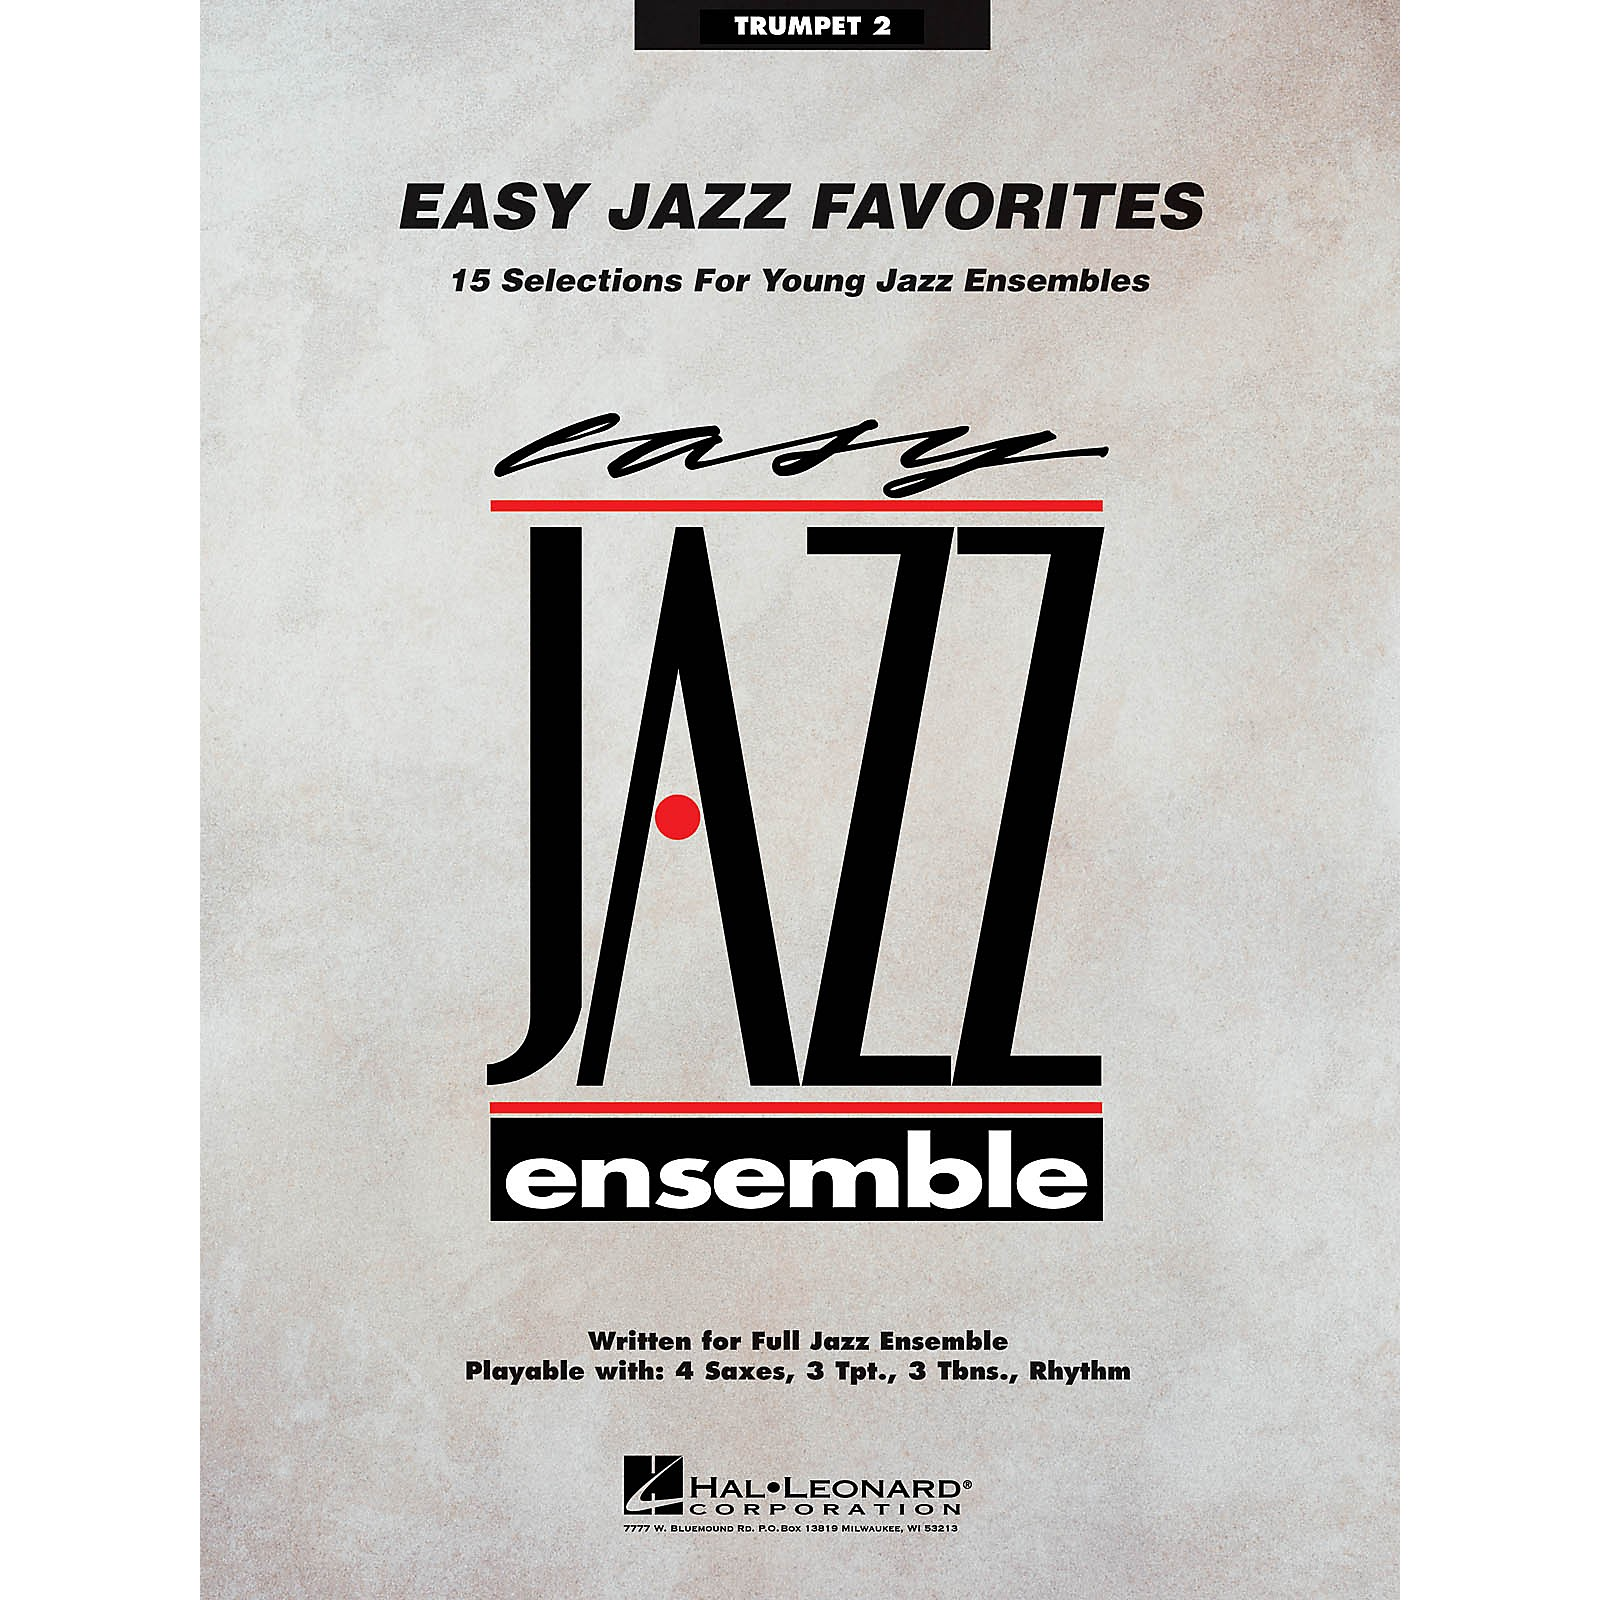 Hal Leonard Easy Jazz Favorites - Trumpet 2 Jazz Band Level 2 Composed by Various